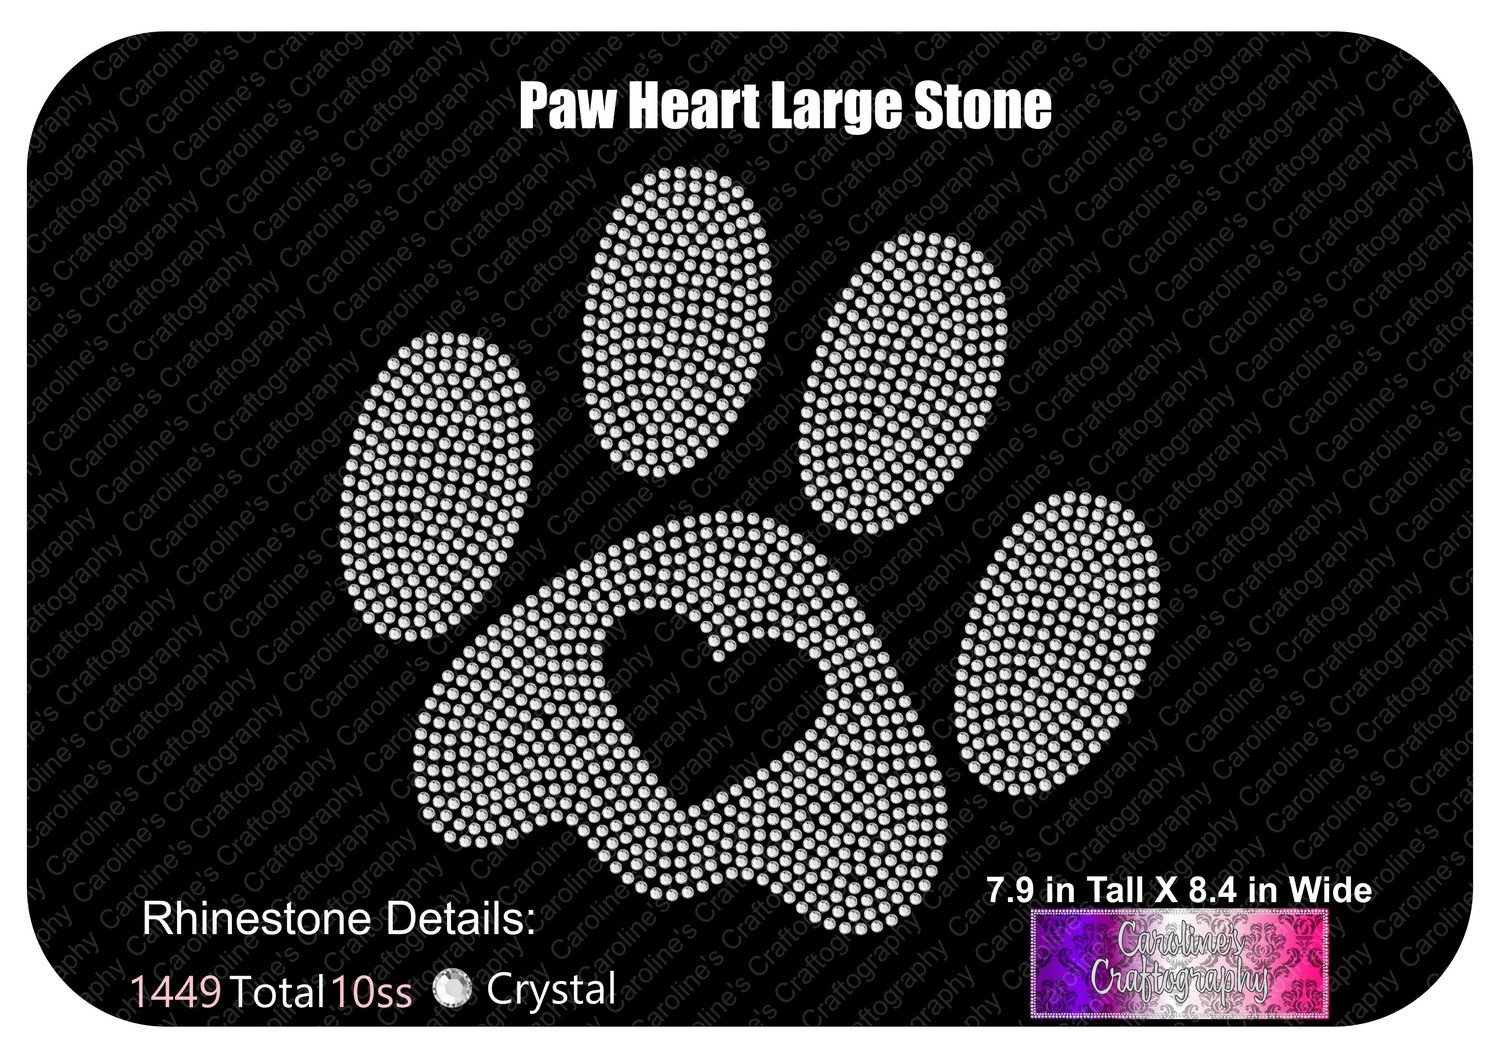 Paw Heart Large Stone